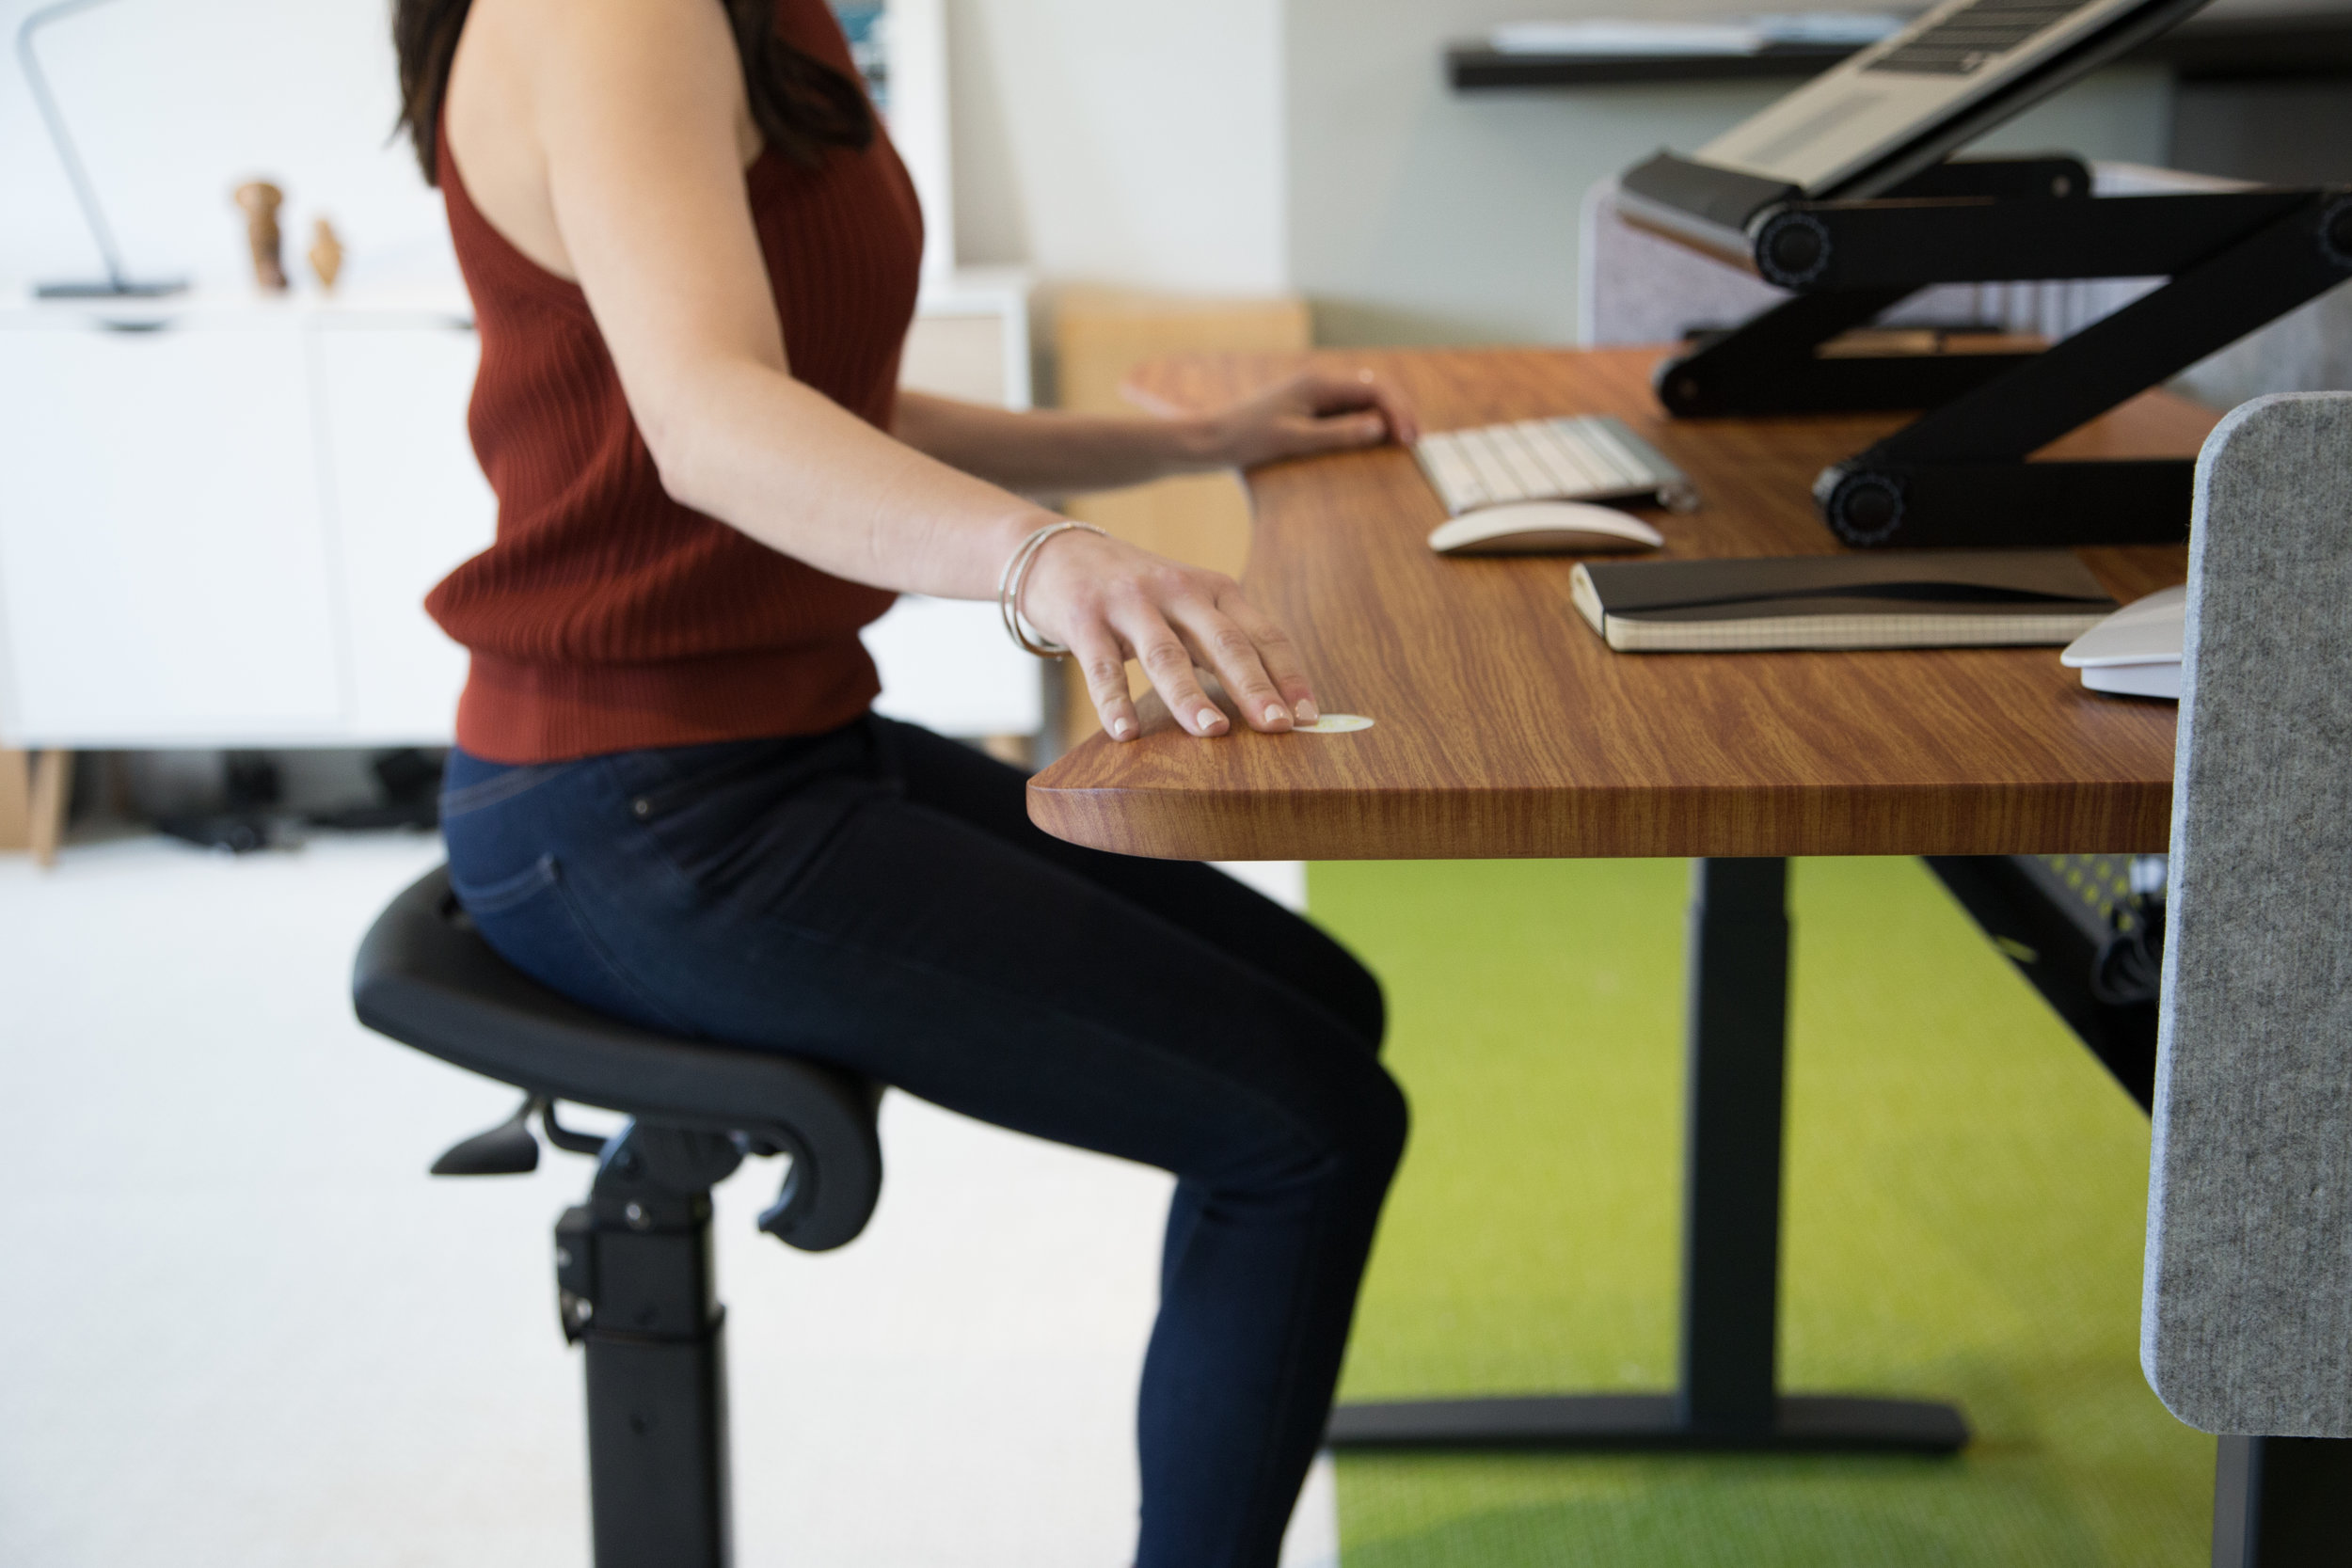 With the seat lowered even more — the chair supports a comfortable stool height posture, with knees below the hips and body in line